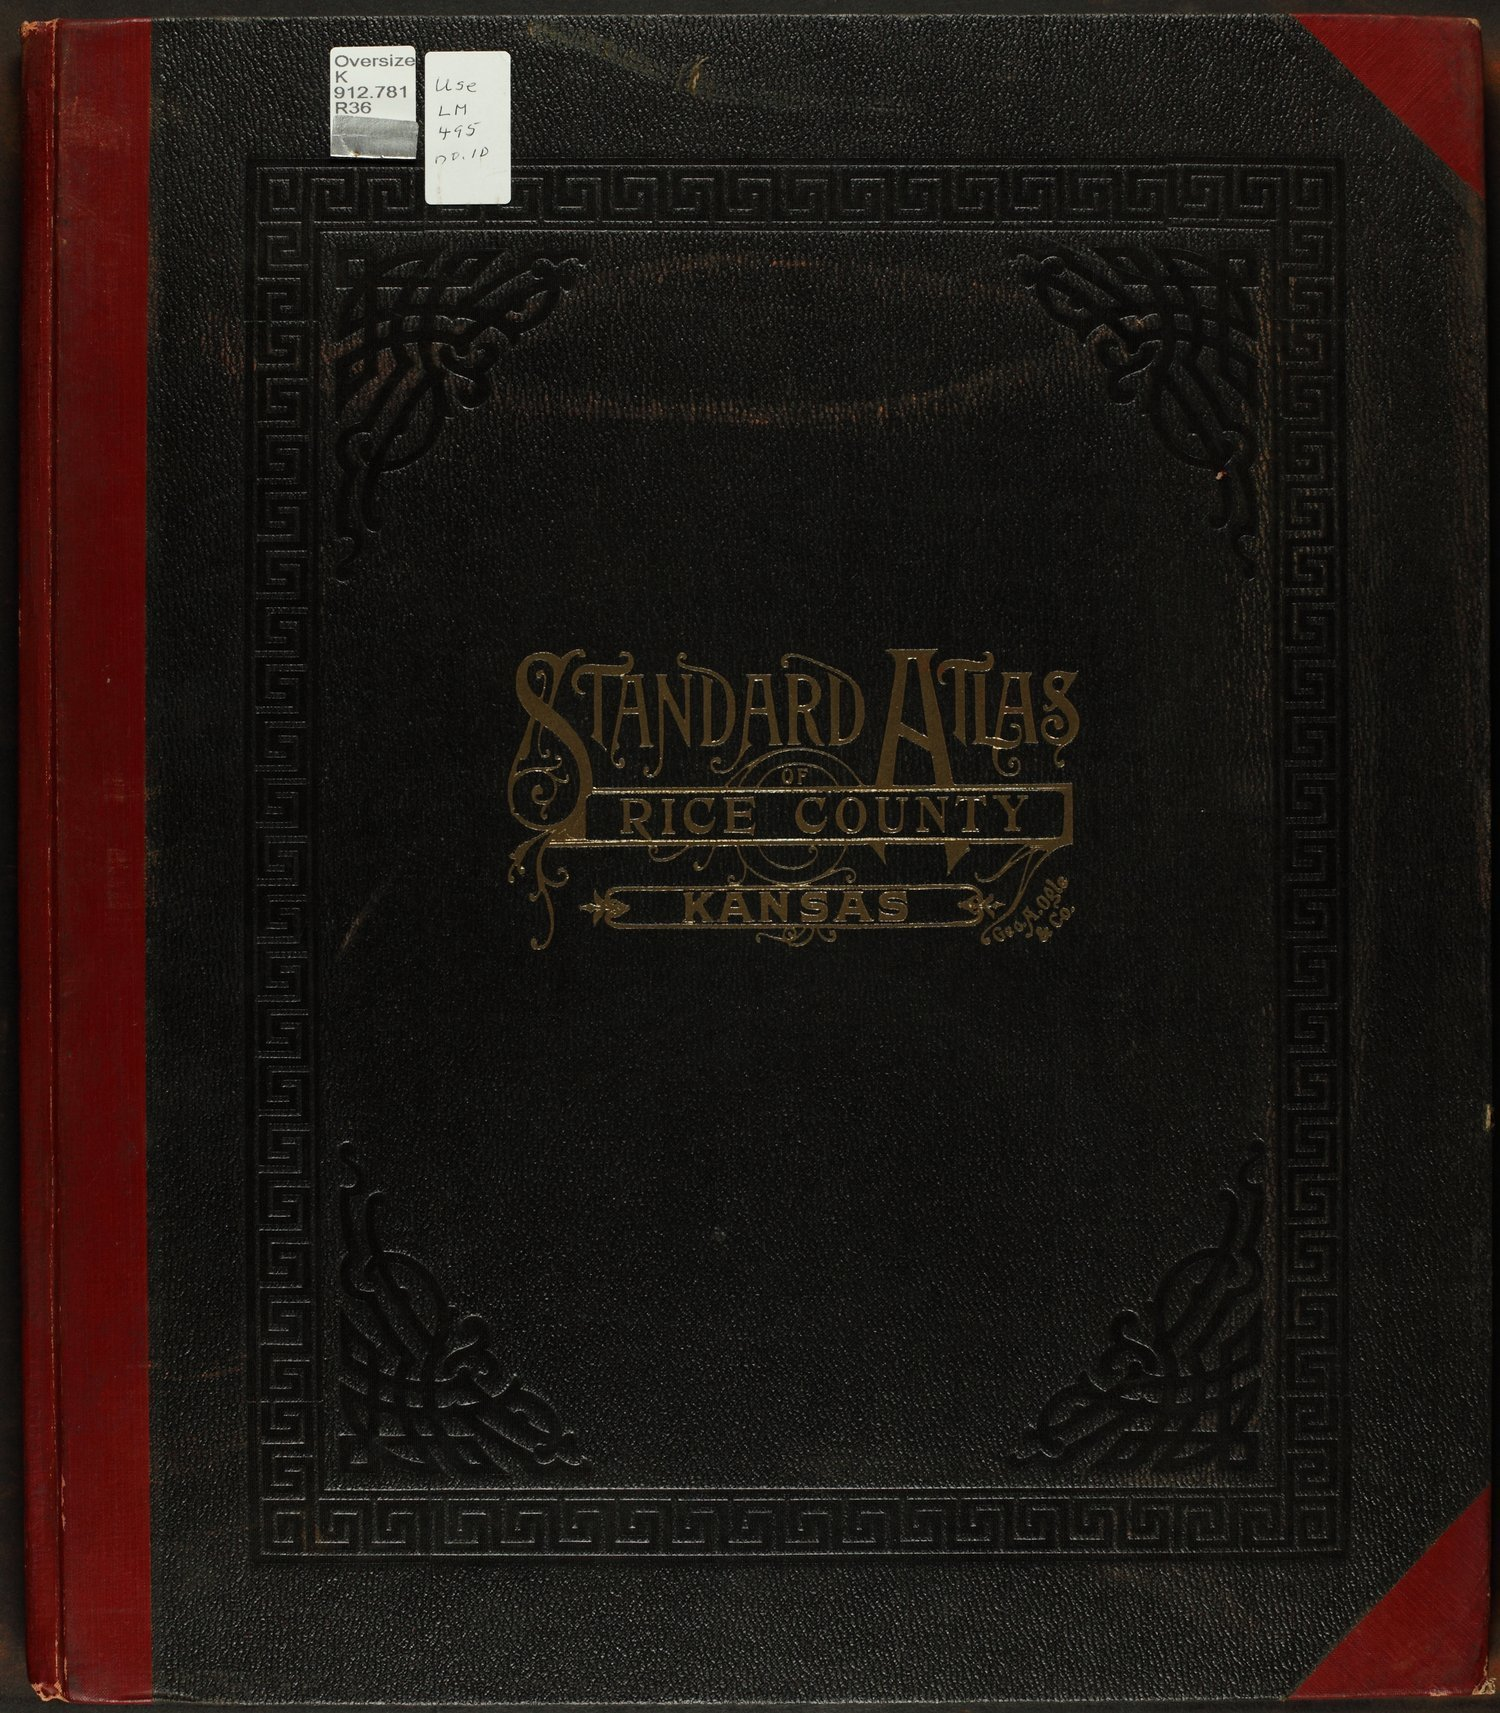 Standard atlas of Rice County, Kansas - Front Cover